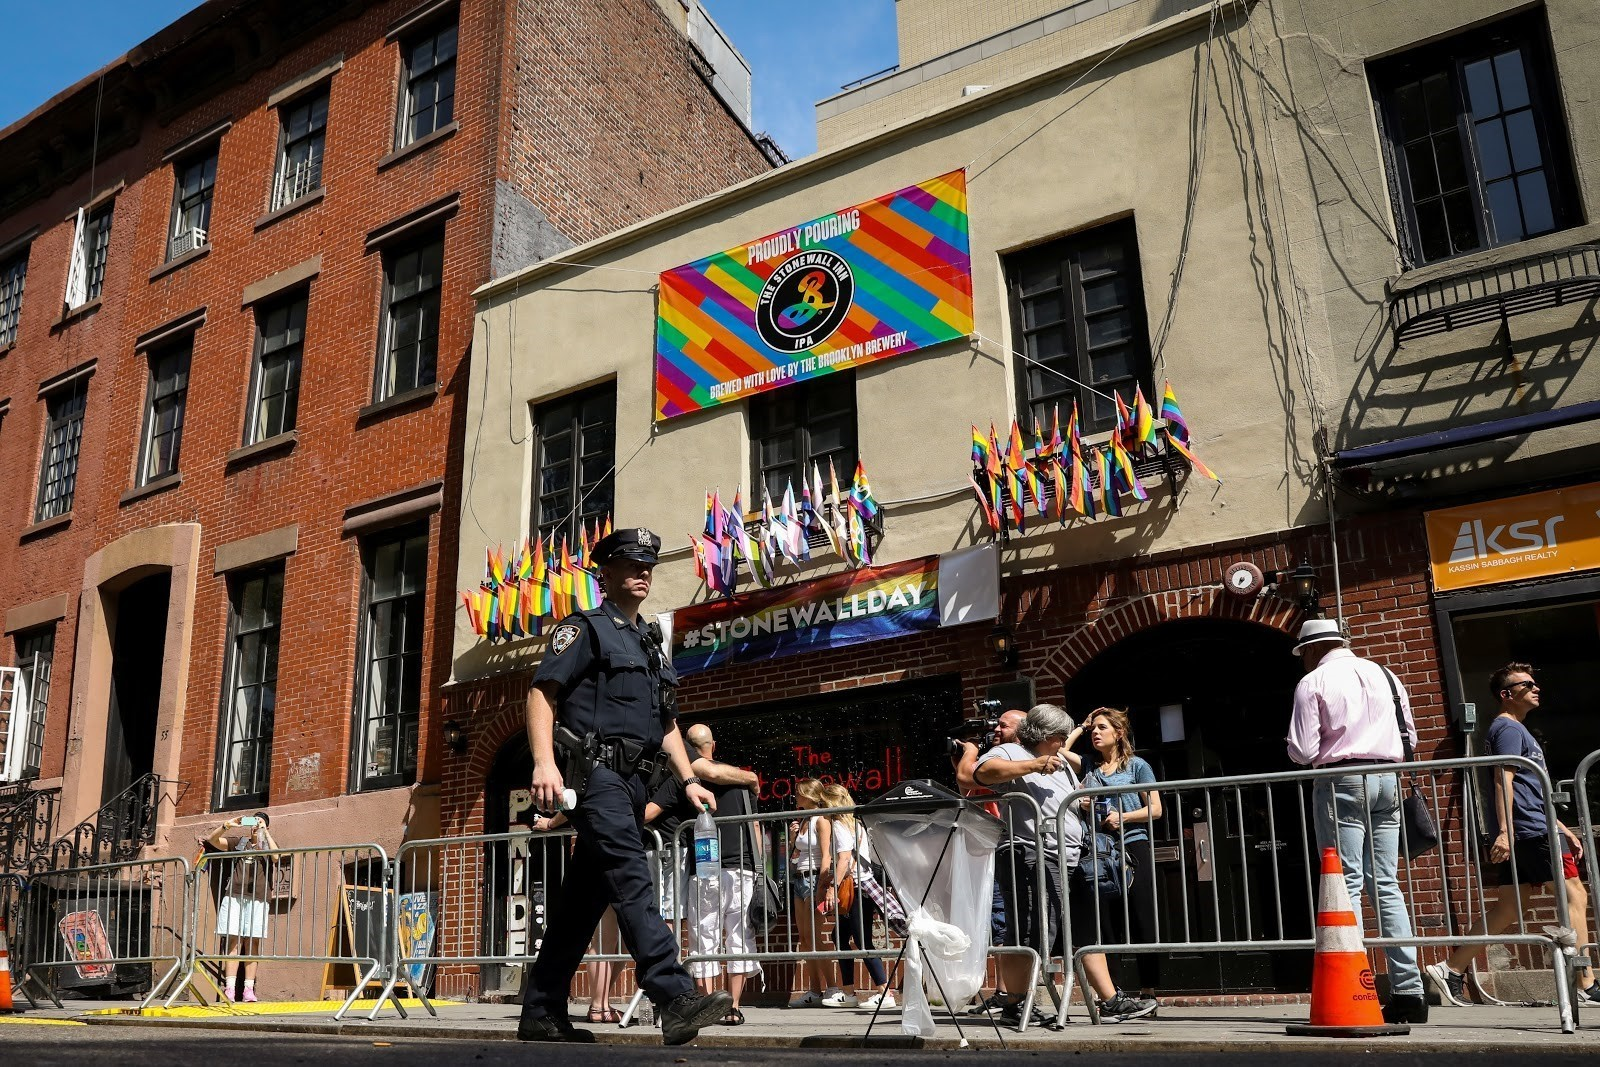 The 50th anniversary was marked in New York by Stonewall Day